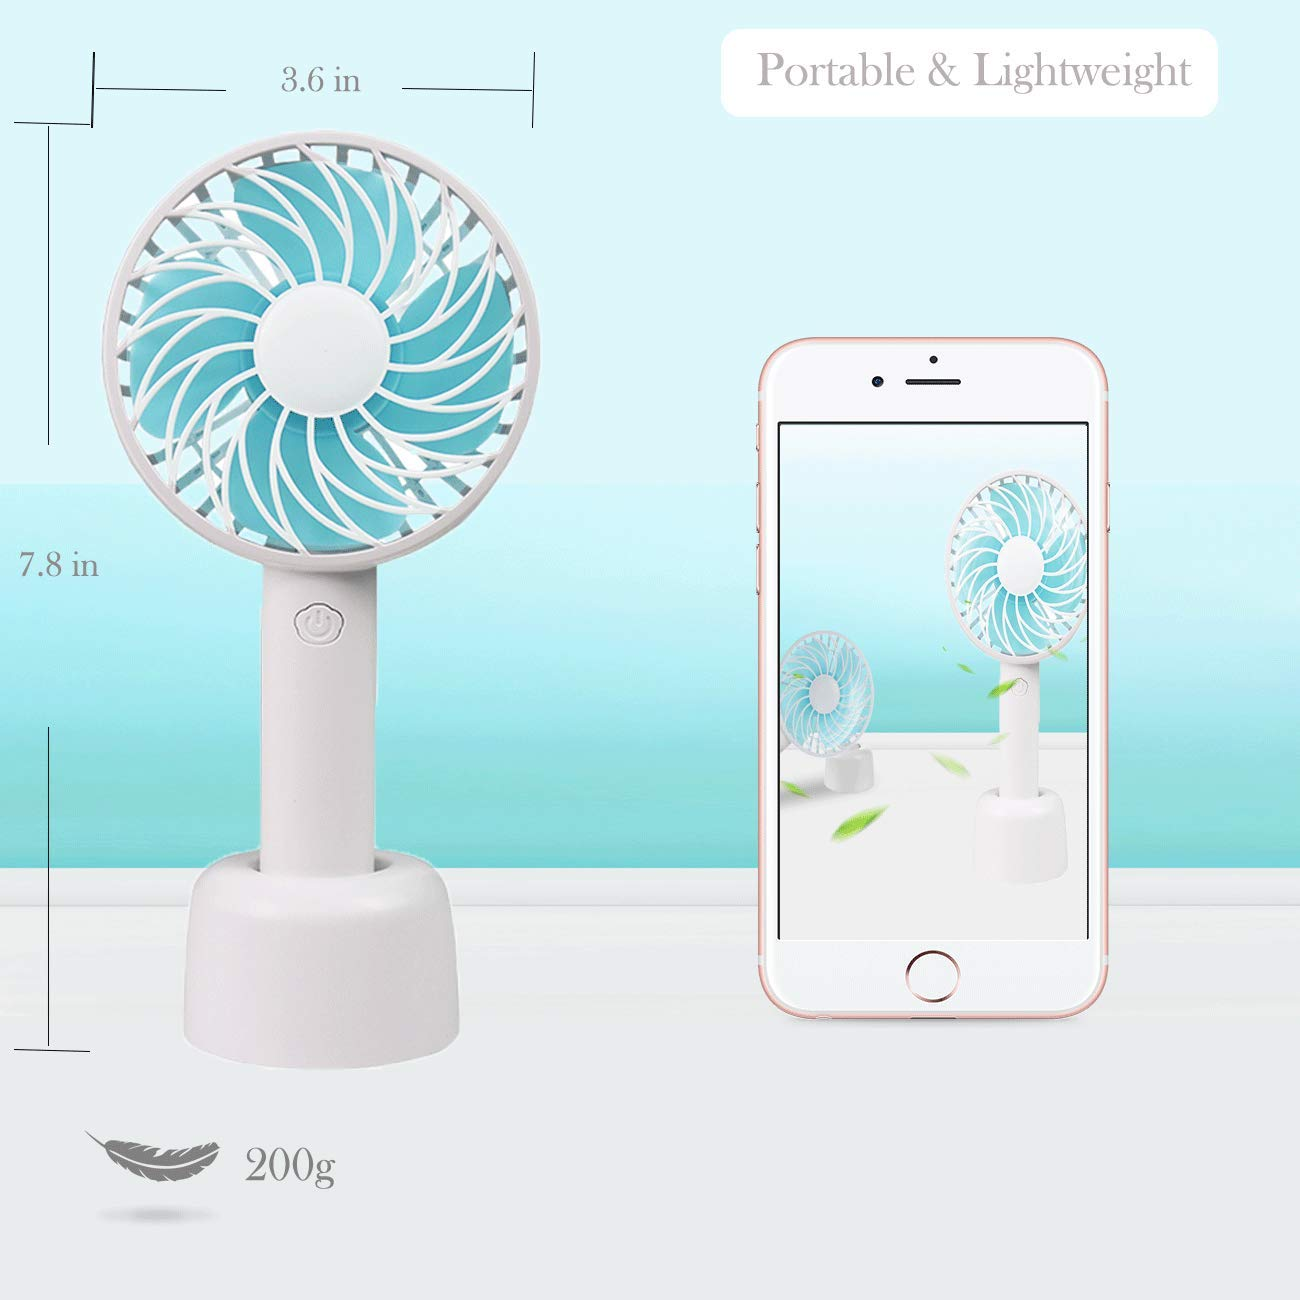 White . Desk Handheld Mini Fan,USB Desk Fan,Battery Operated Personal Fan,3 Speeds Support Wireless /& Micro USB Recharging for Home Traveling Office Outdoor Household Room